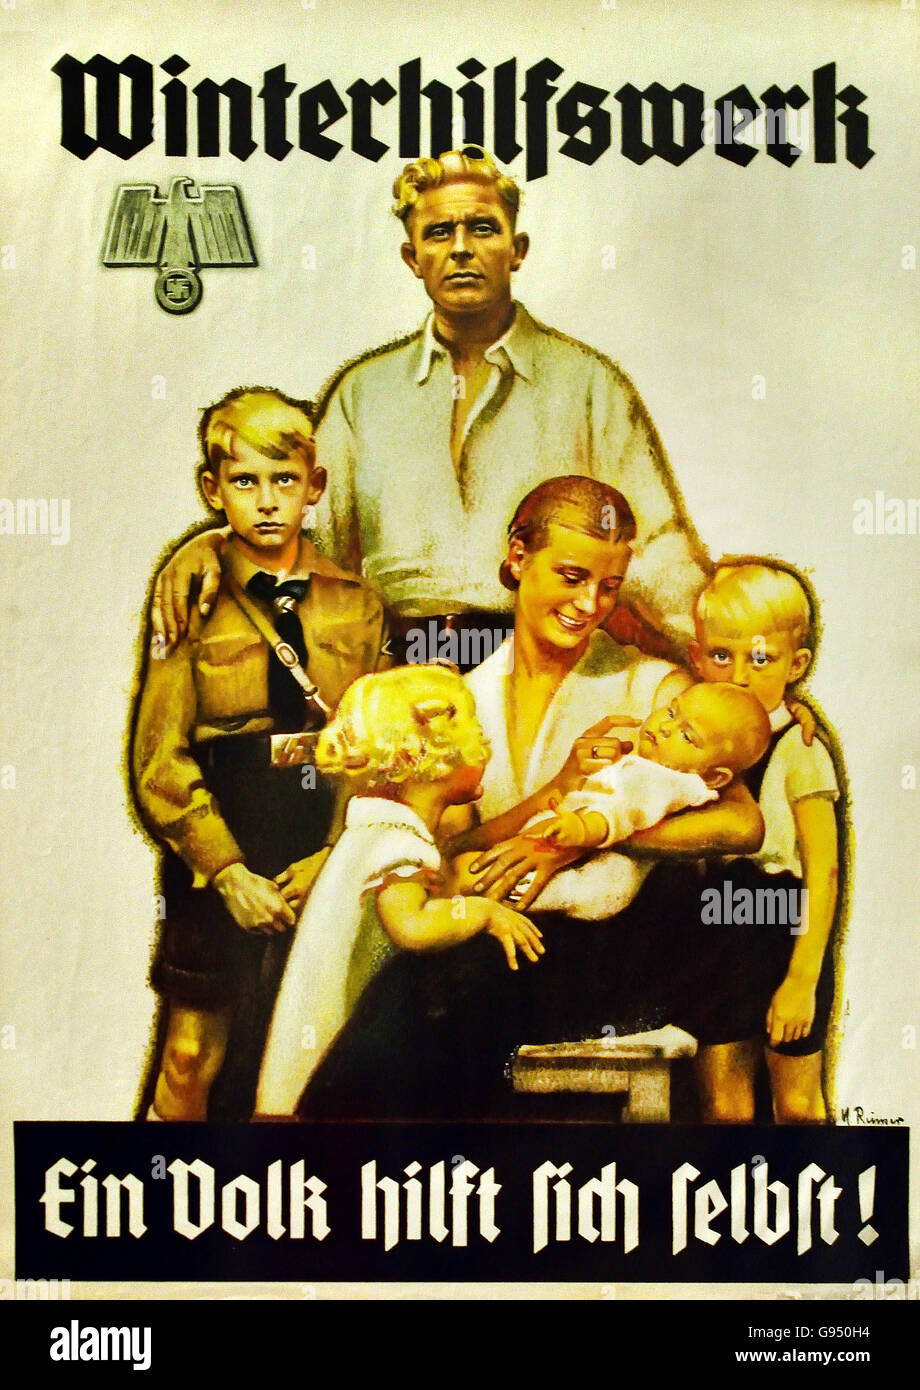 Poster promoting the Winter Relief Organization 1938 Max Reimer 1877-1970 Berlin Nazi Germany - Stock Image